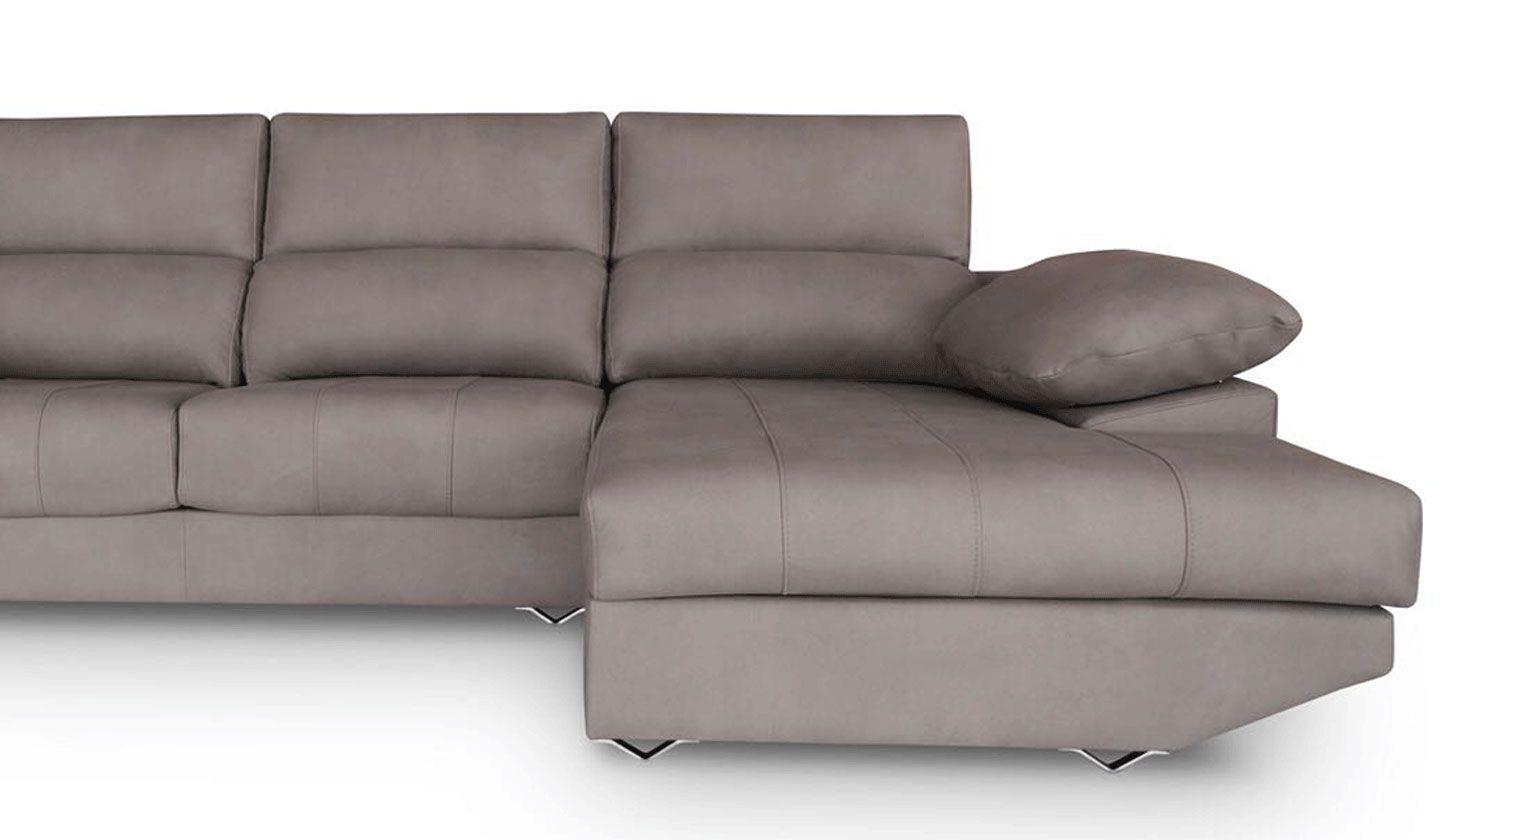 Comprar sof tela invictus chaise longue 3 plazas tela romer for Sofa blanco barato